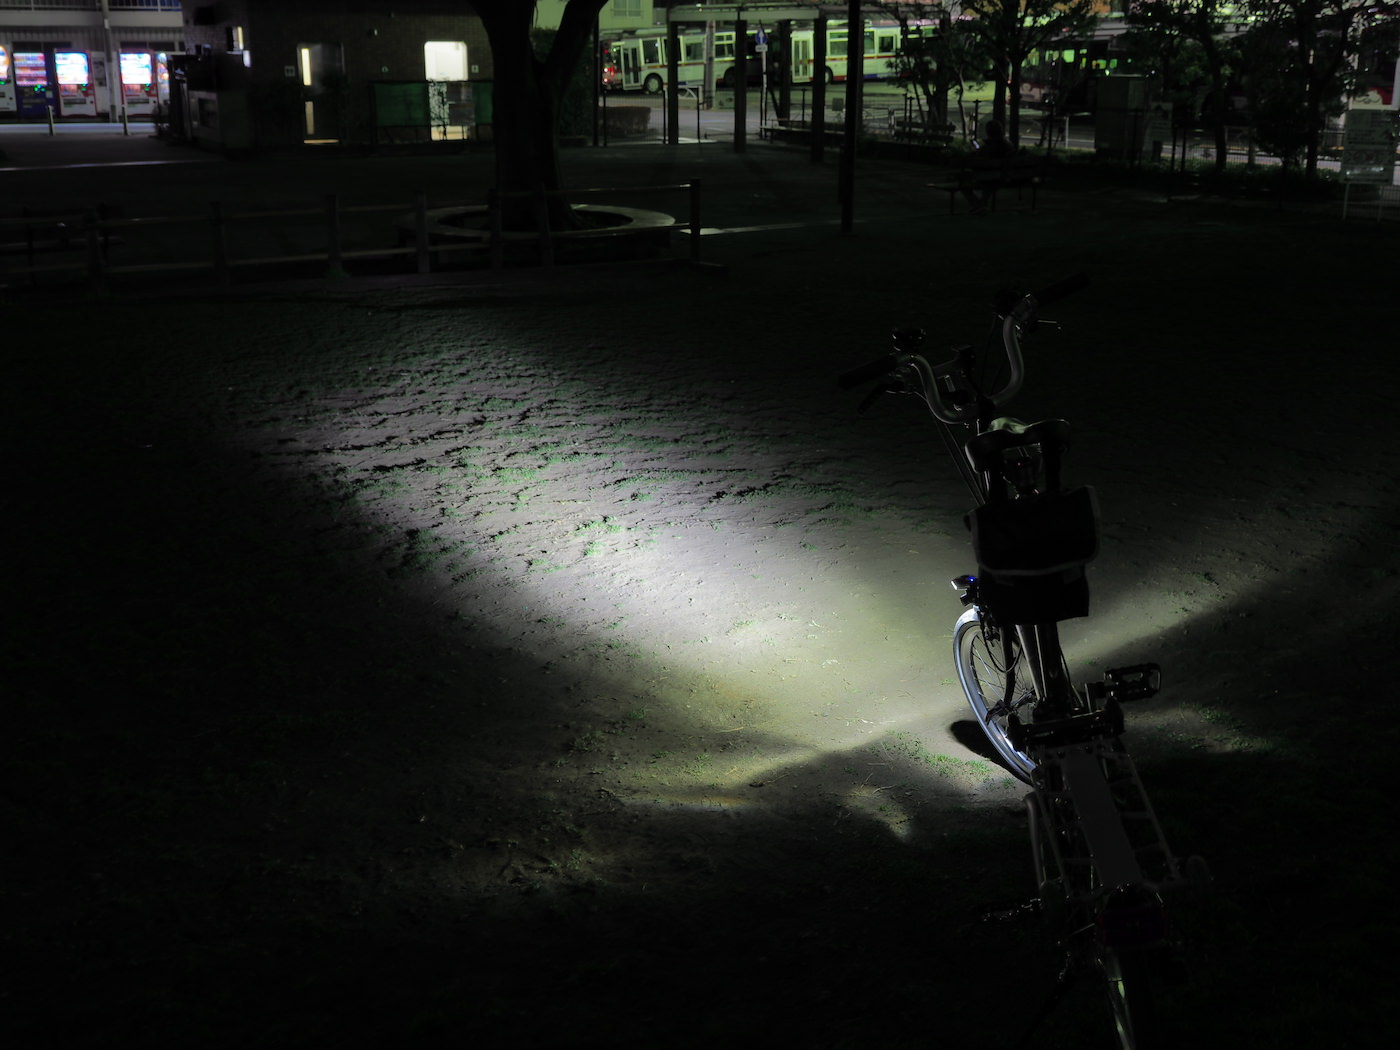 Cree xpg 2 cheap chinese led light with wide angle lens for bicycle 00036